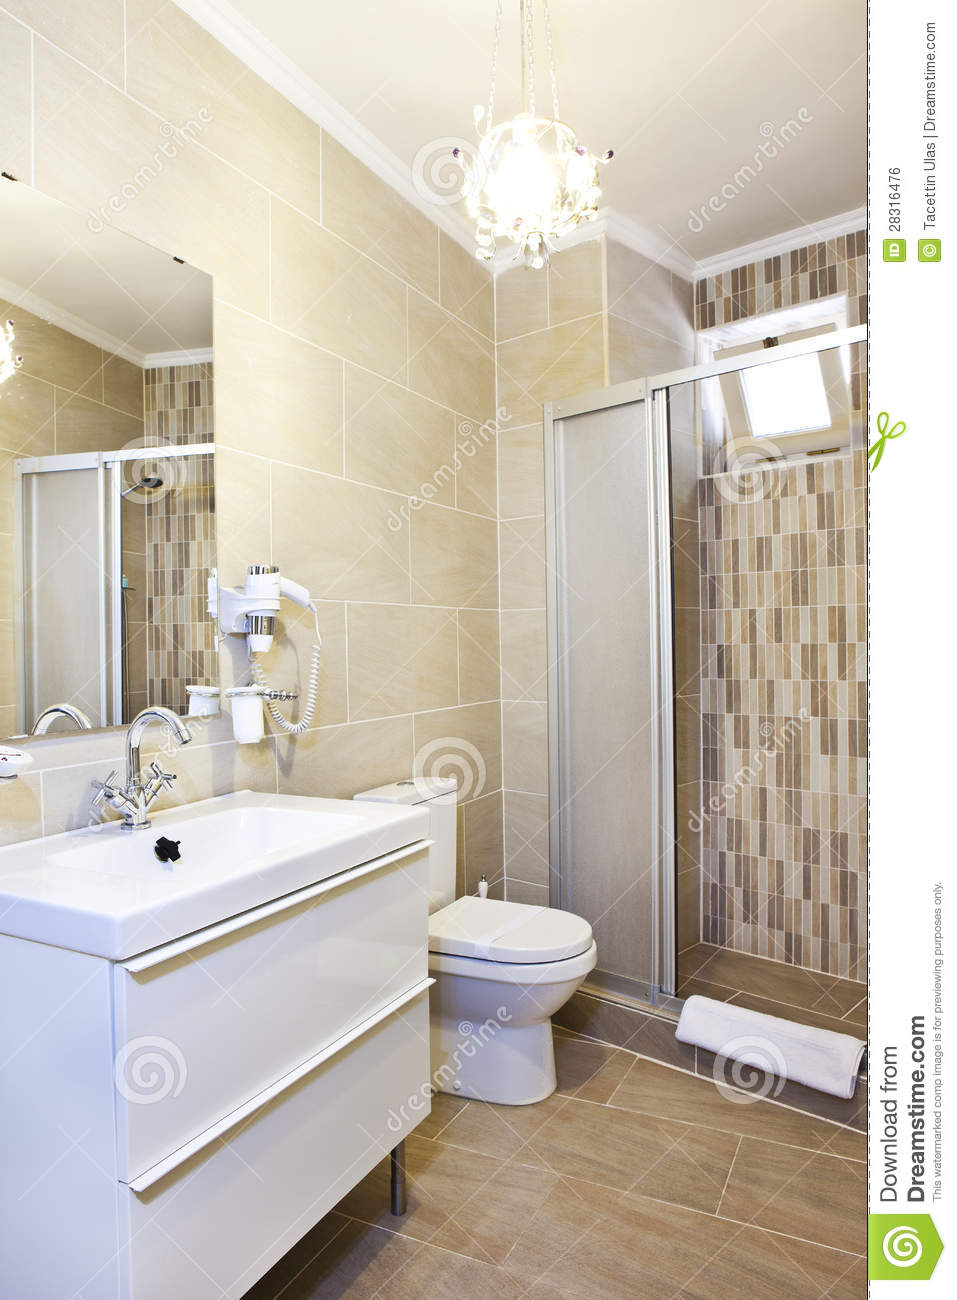 Bathroom Interior Royalty Free Stock Image Image 28316476